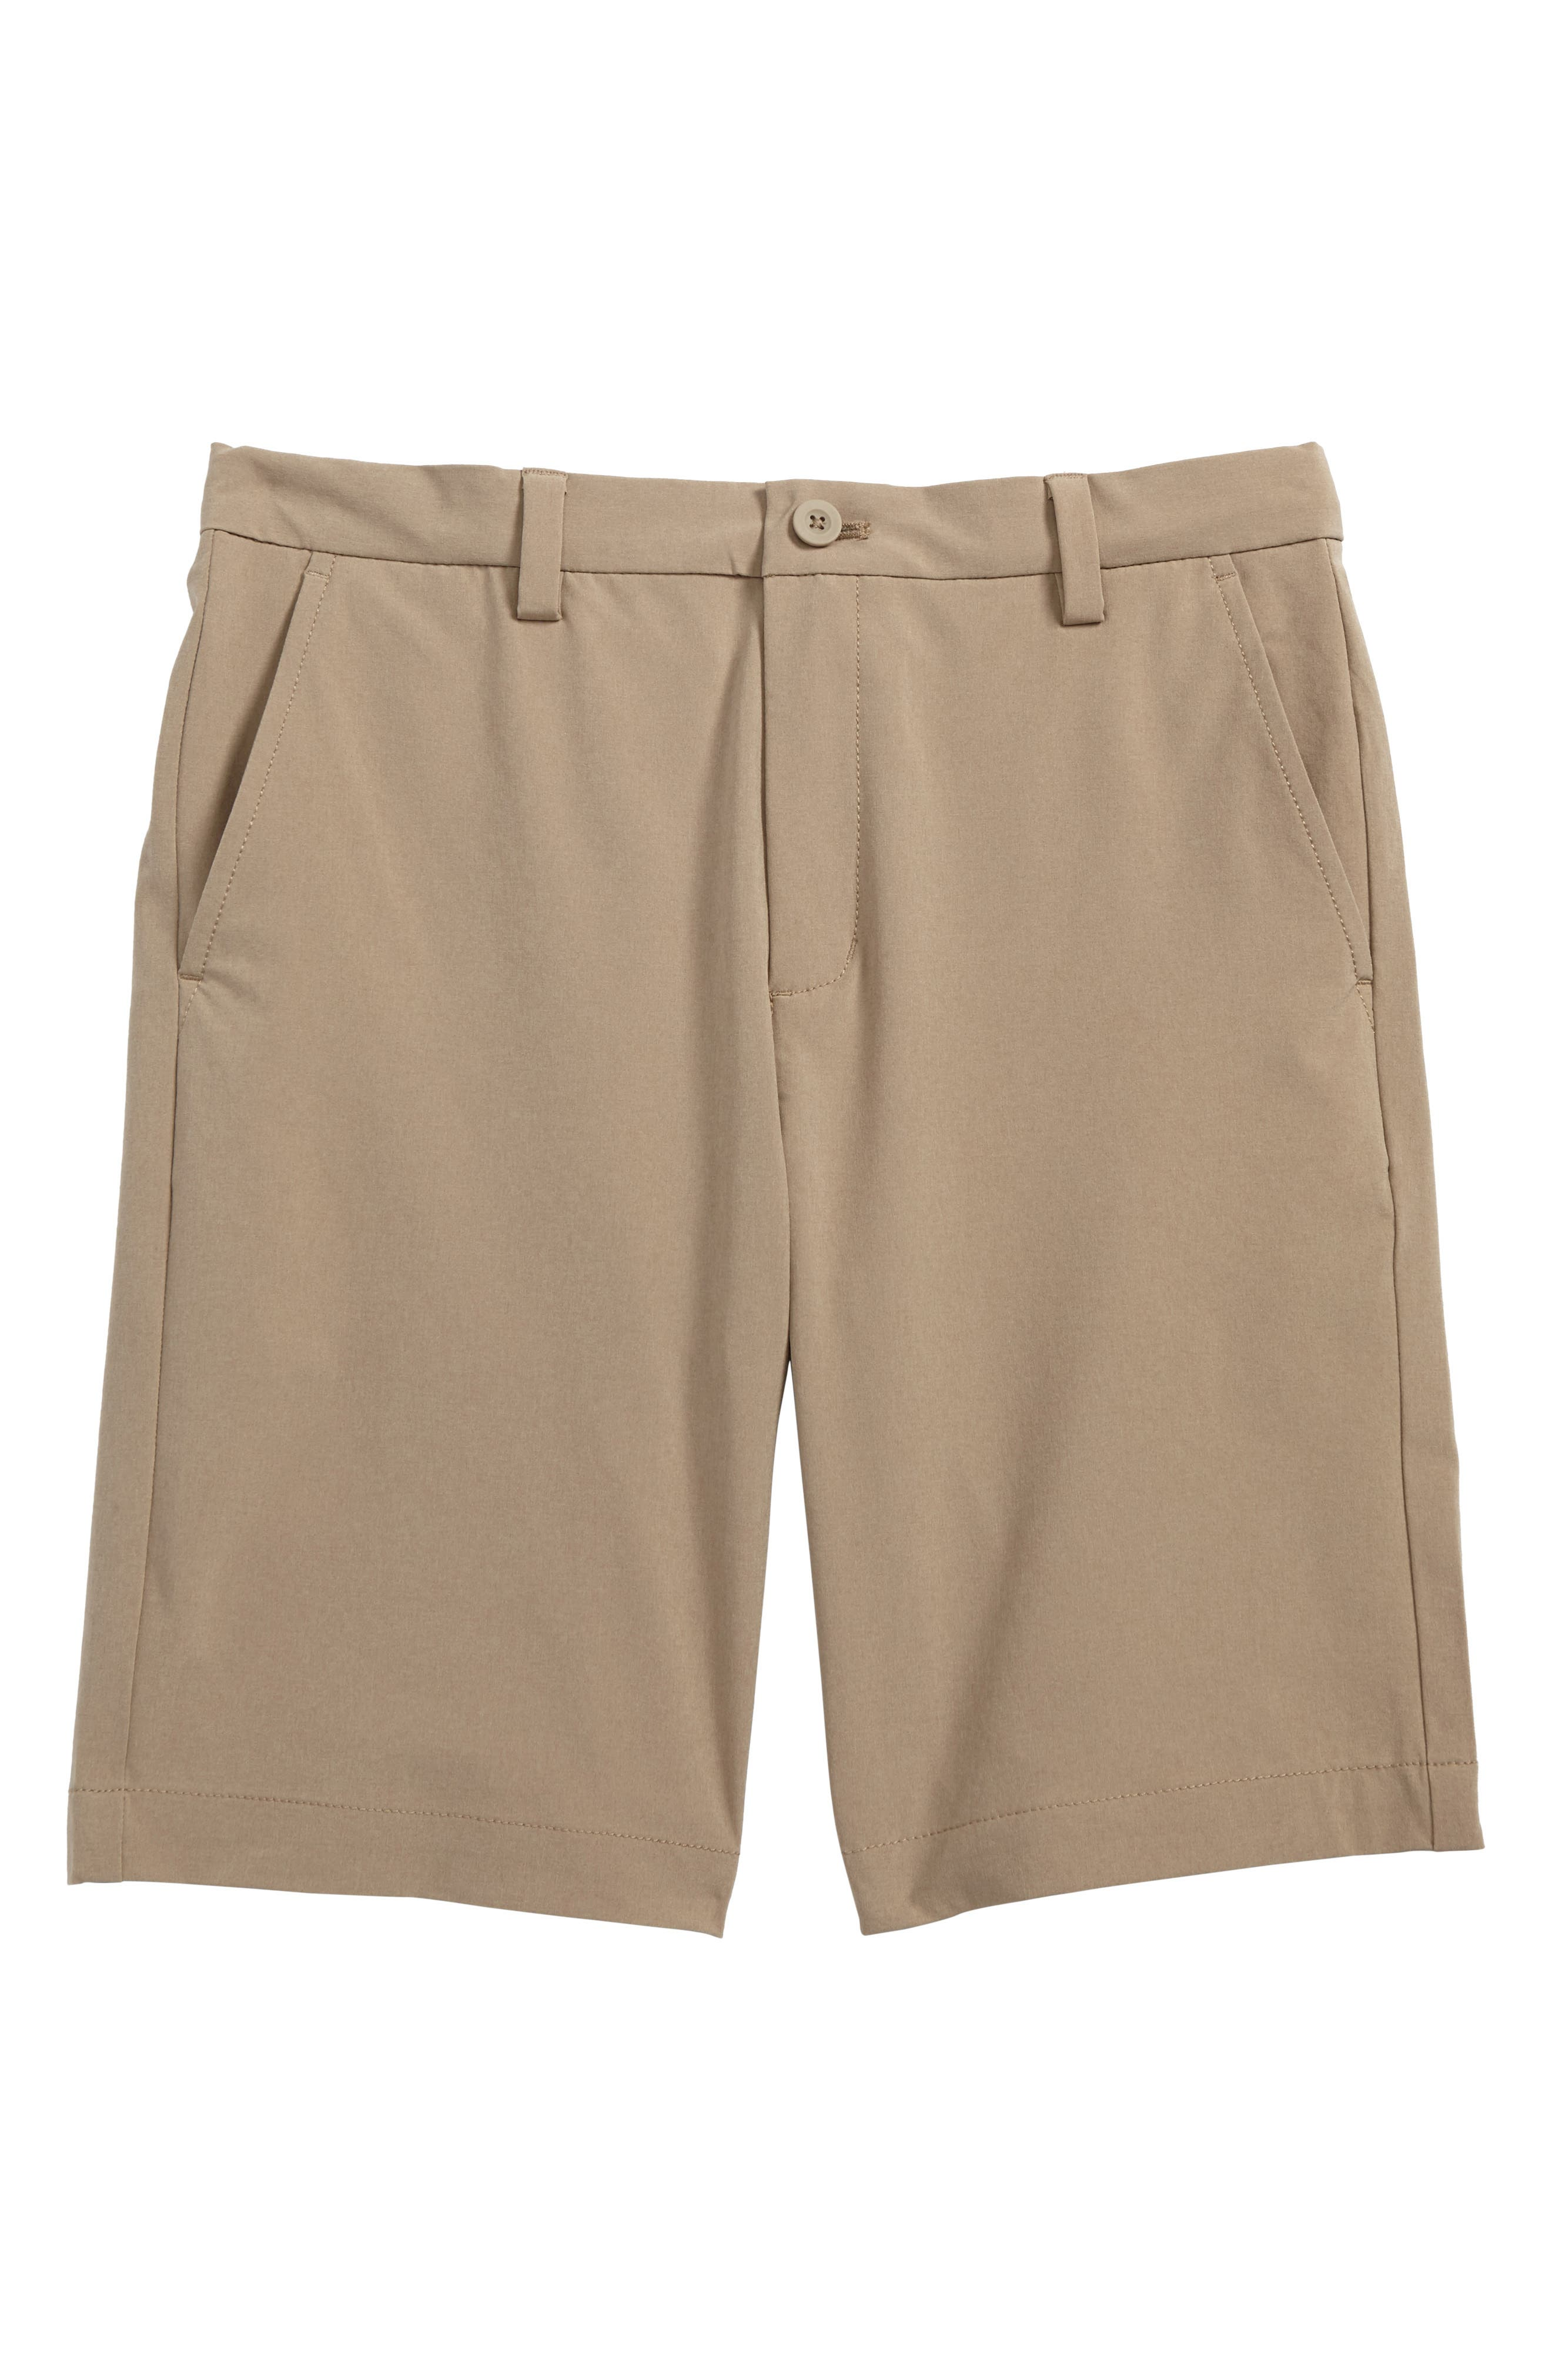 Performance Breaker Shorts,                             Main thumbnail 1, color,                             Khaki